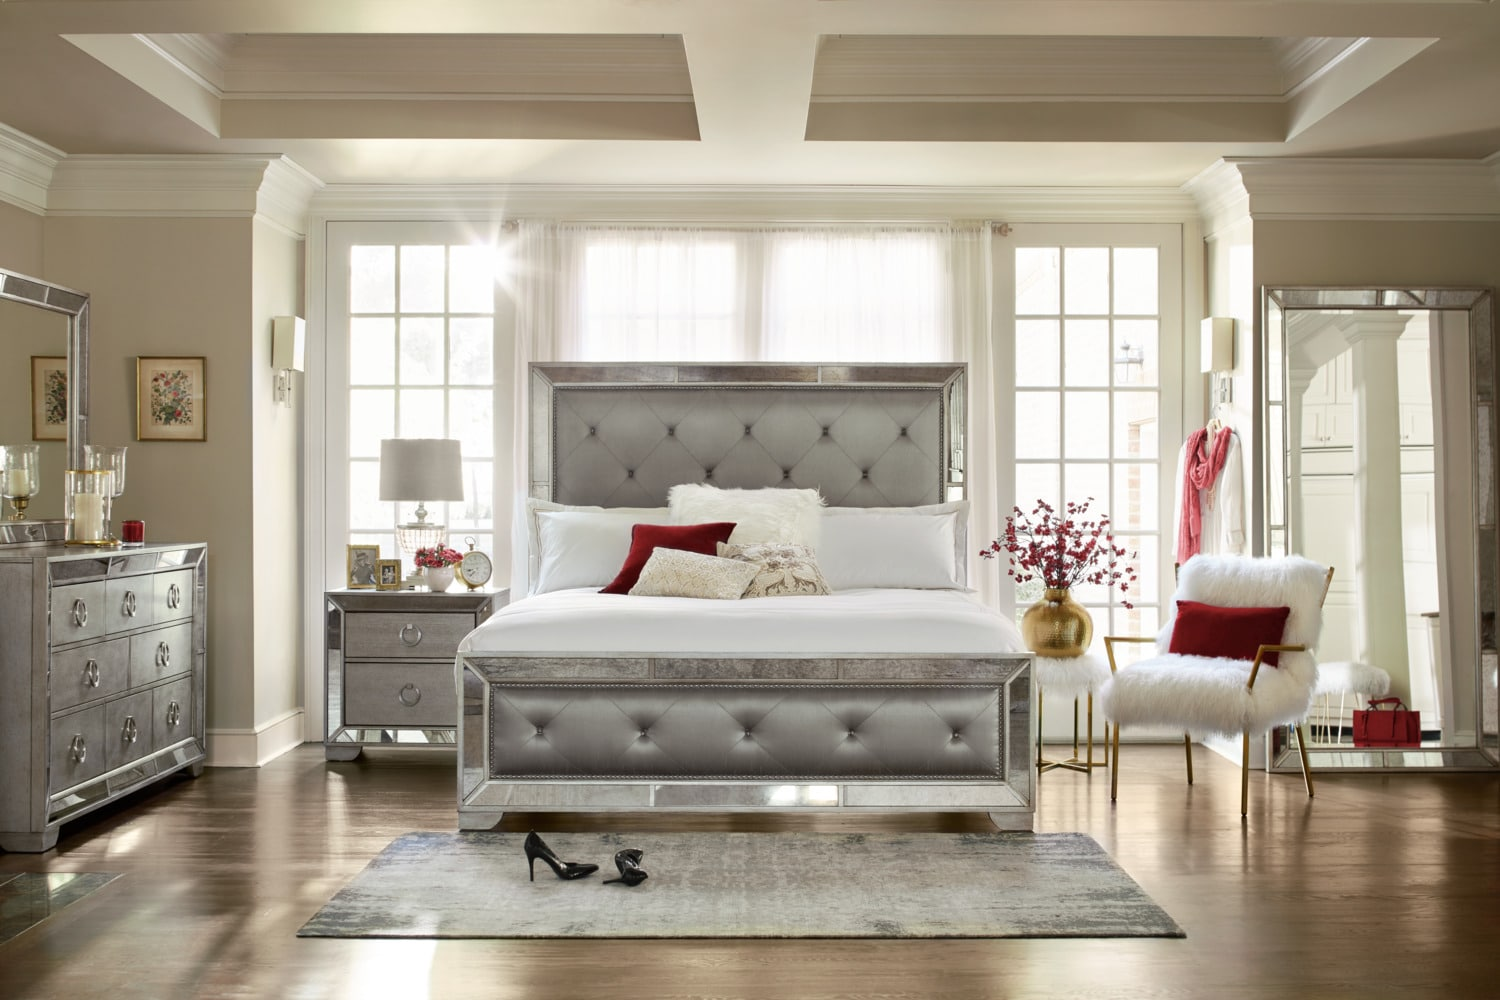 Angelina 5-Piece Queen Bedroom Set - Metallic | Value City Furniture